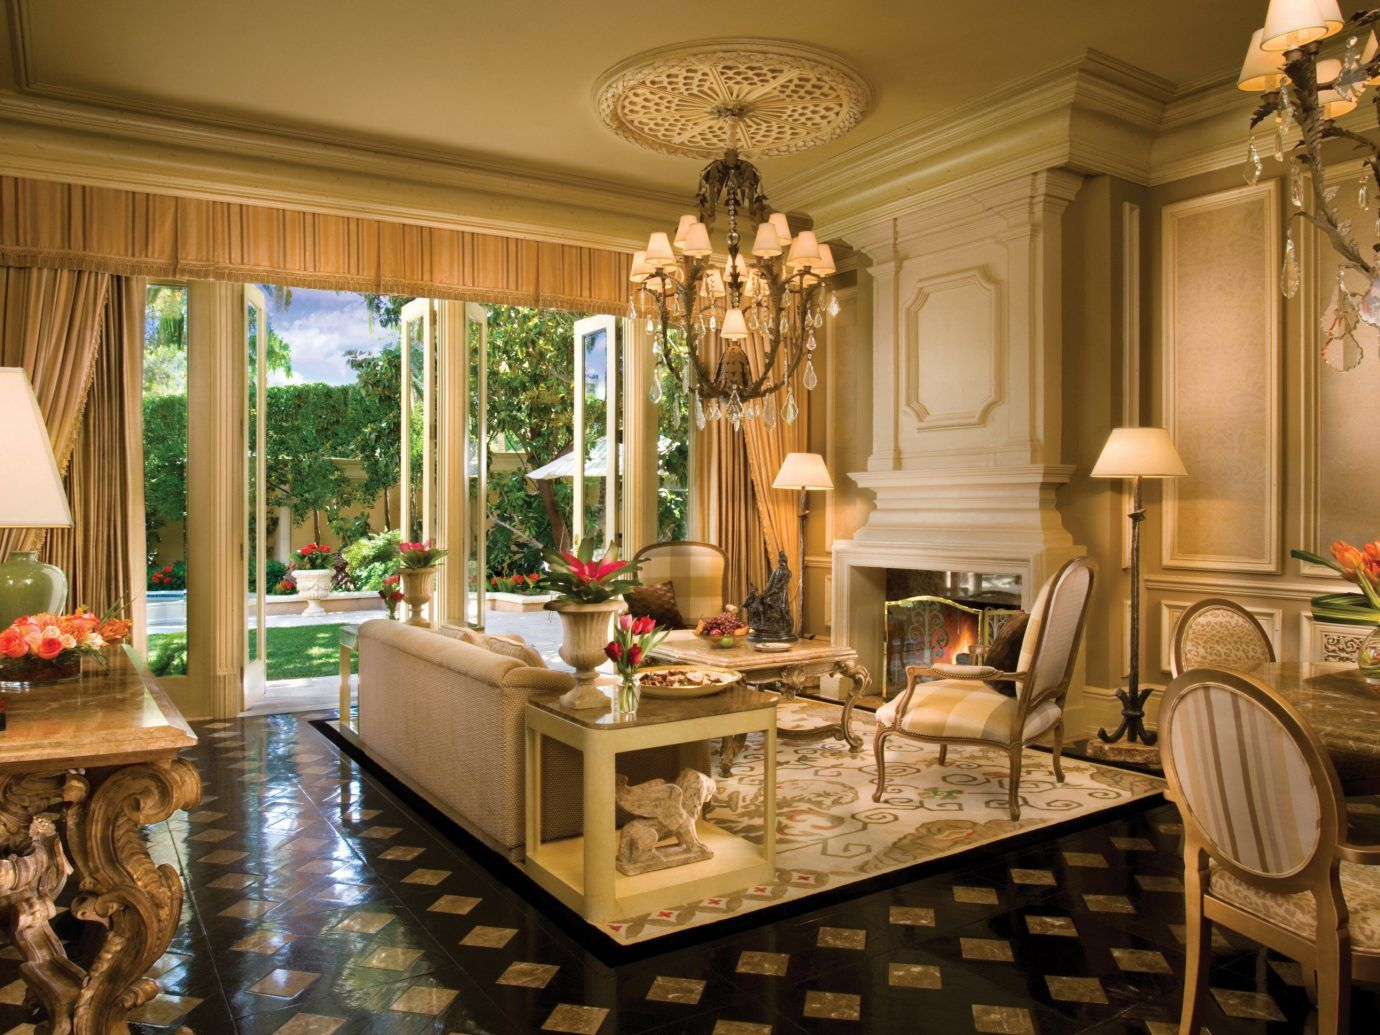 Image Result For Luxury Massage Parlor Mirage Las Vegas Home Decor Home